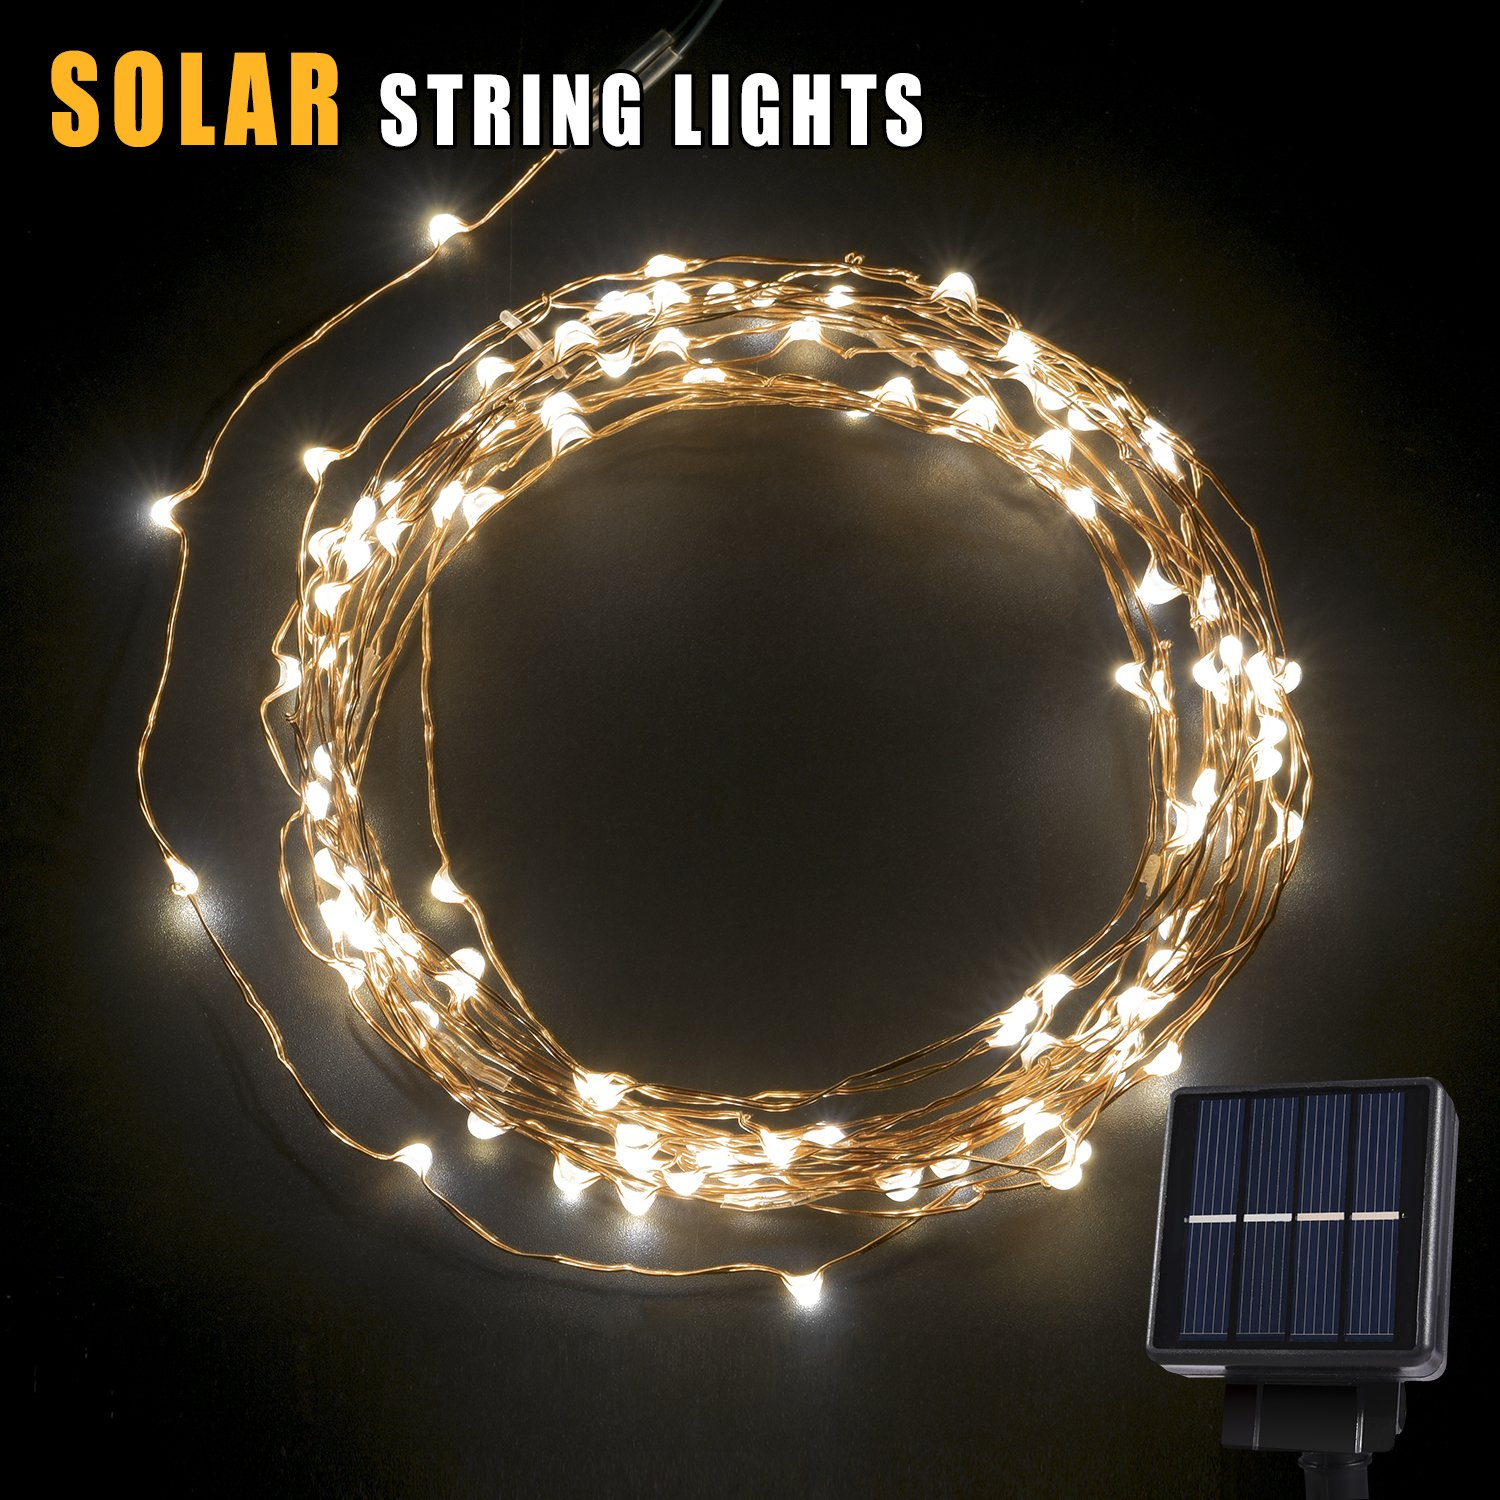 Solar LED String Light 120 LEDs Outdoor Solar Powered LED String Lights Water... eBay